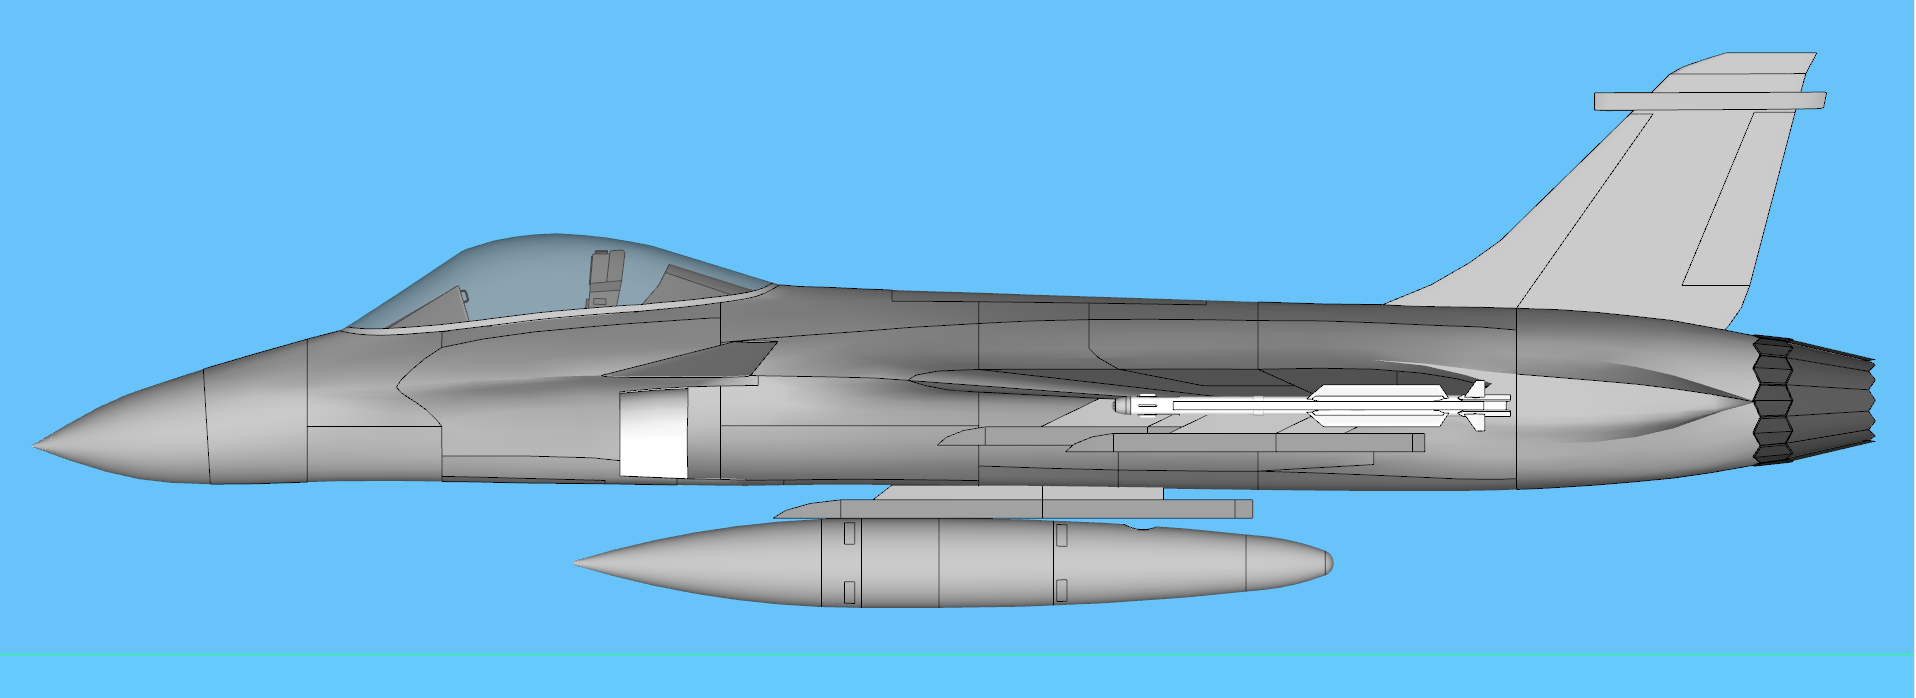 Air superiority fighter proposal 6 « Defense Issues